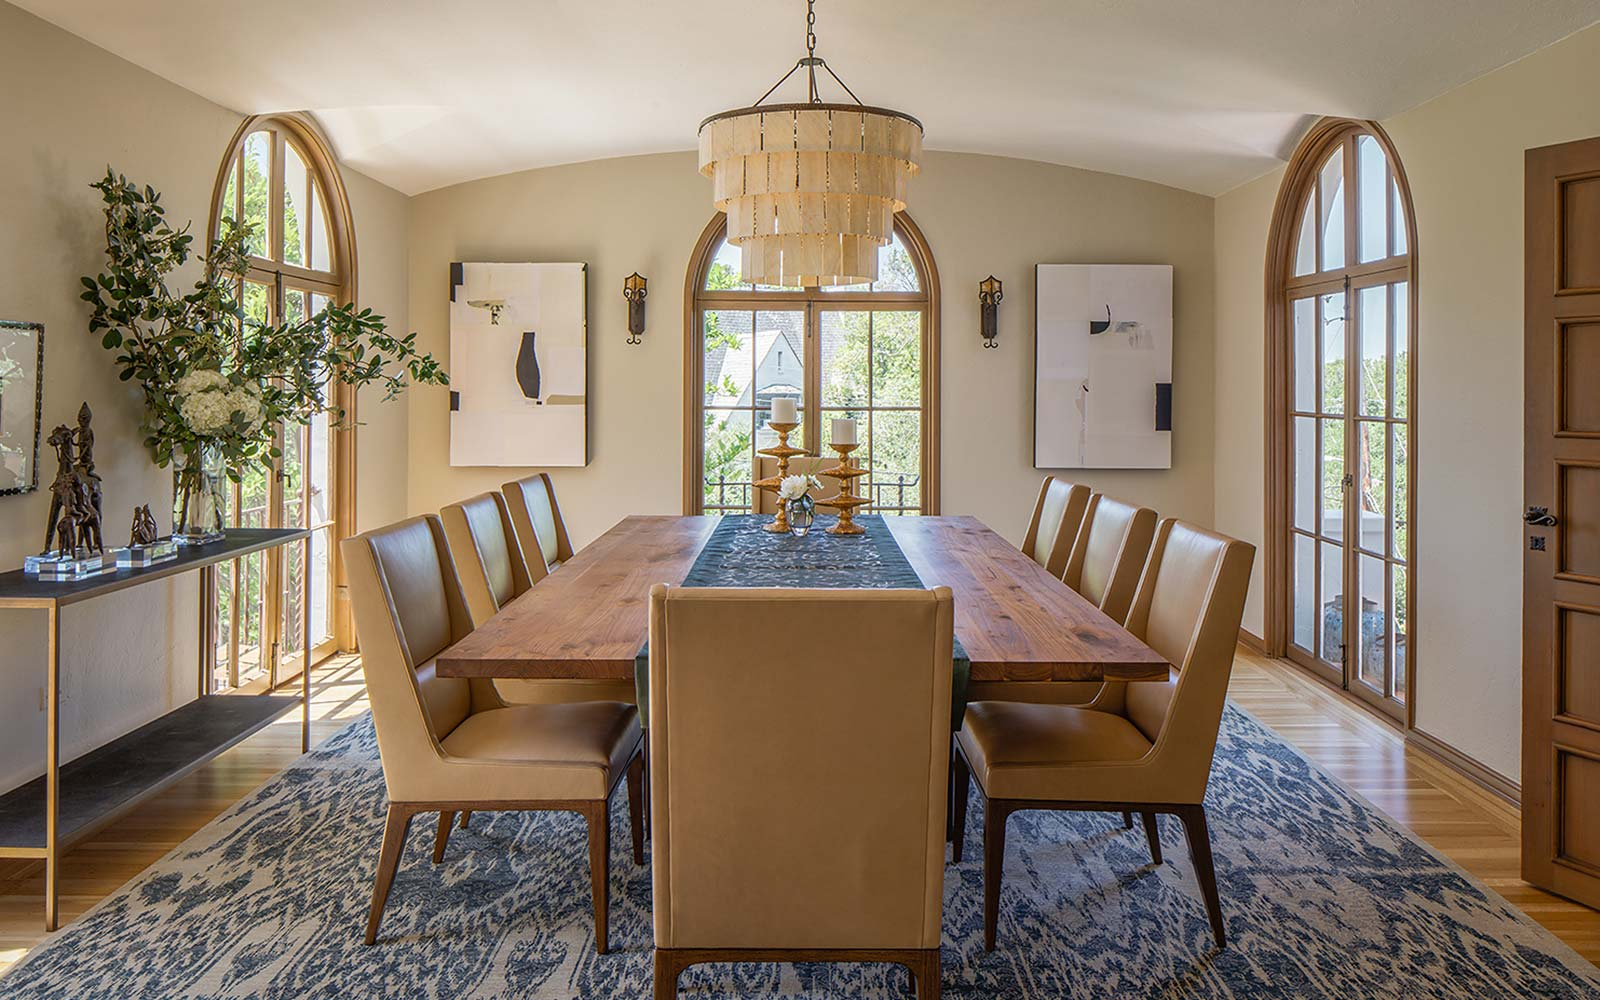 Spanish mediterranean chic interior design dining room, by LMB Interiors, Bay Area best interior designer, 2015 and 2018.